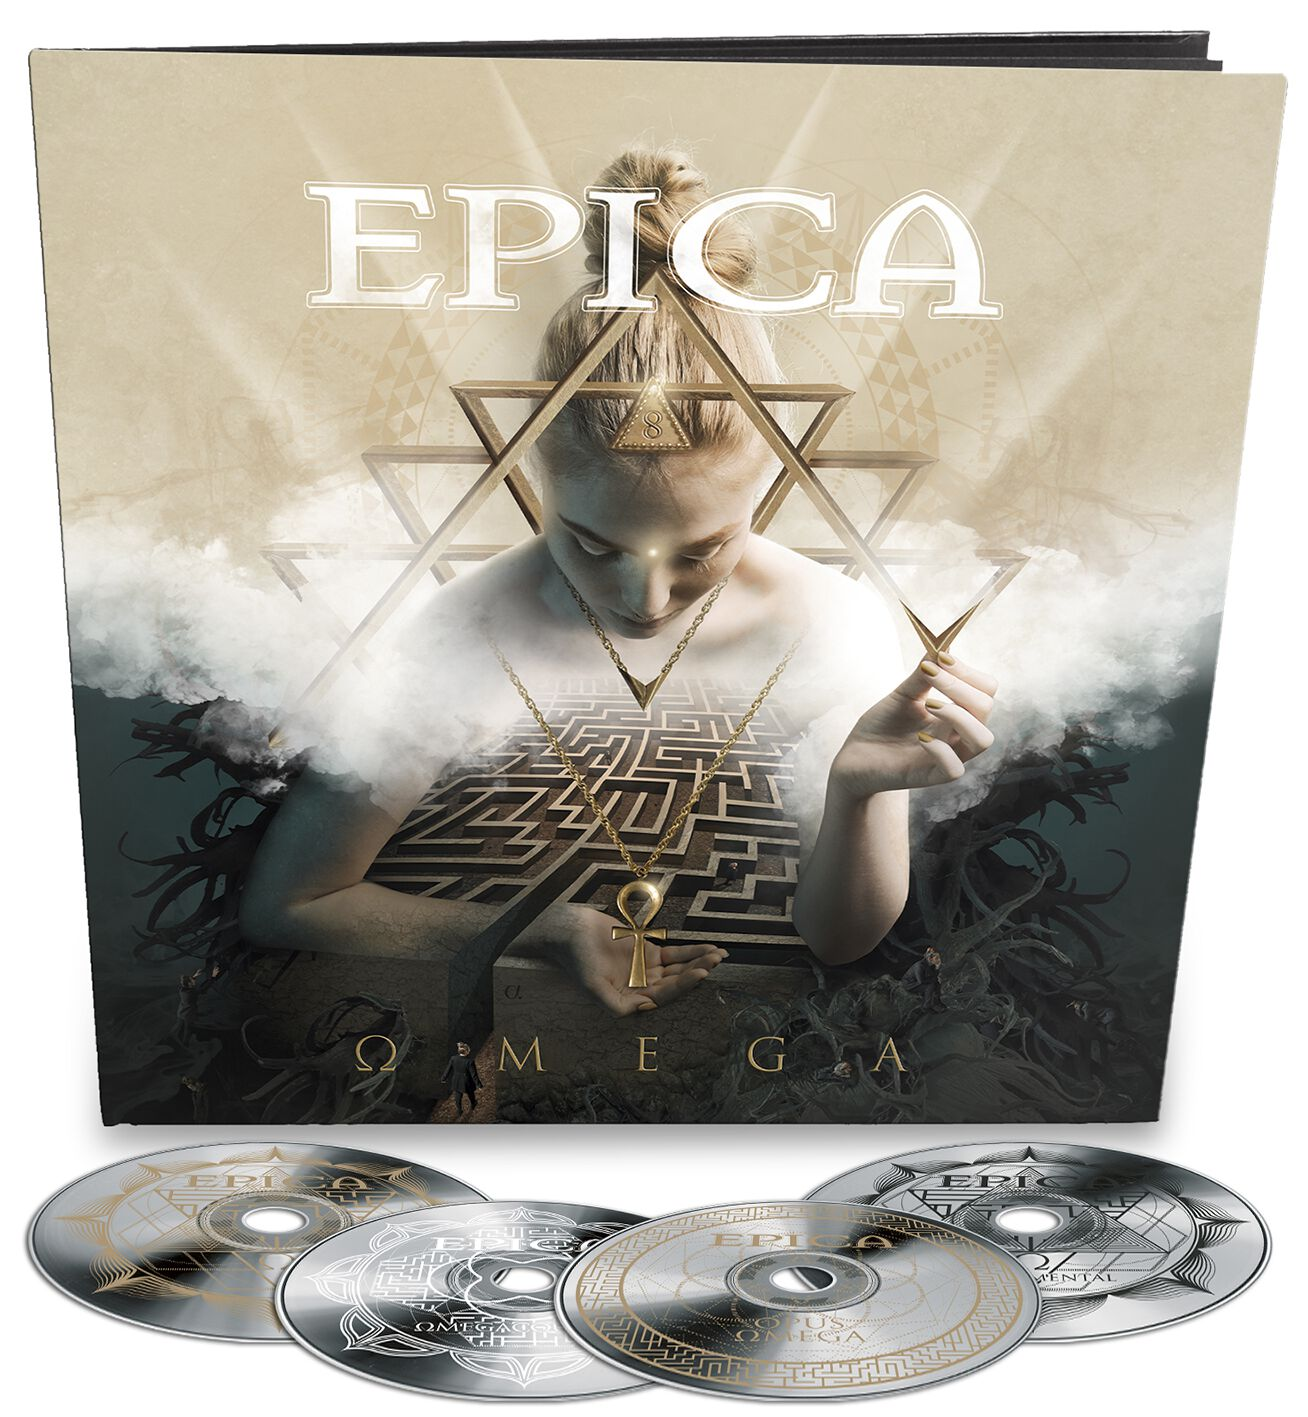 Image of Epica Omega 4-CD Standard